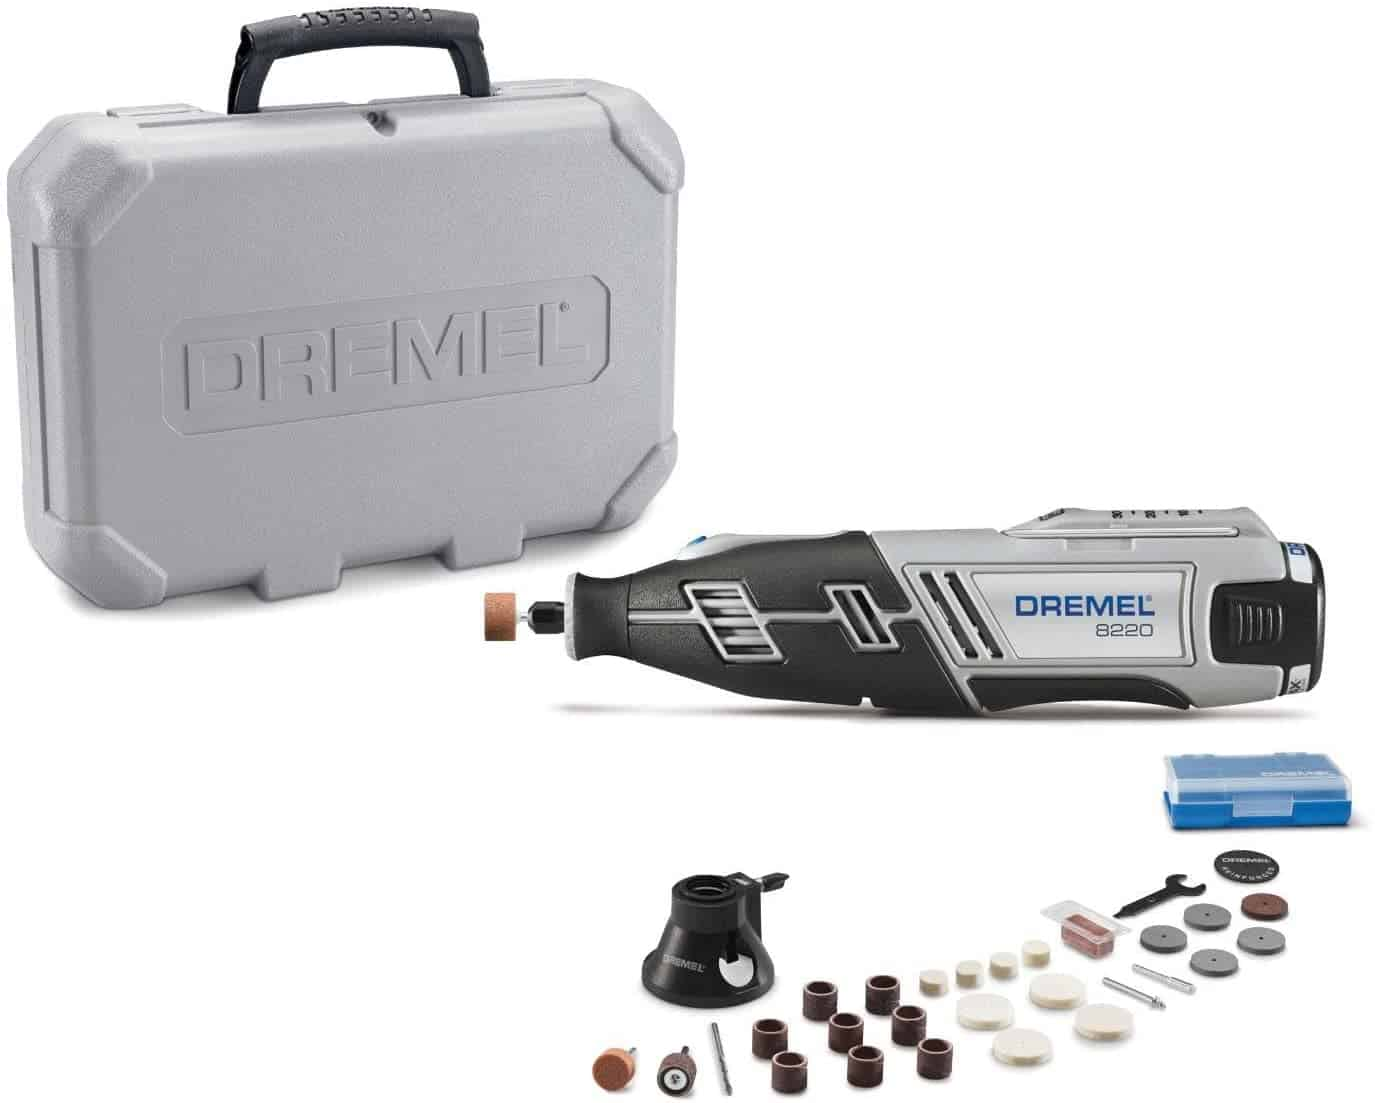 Overall best and complete cordless rotary tool kit- Dremel 8220-1:28 12-Volt Max